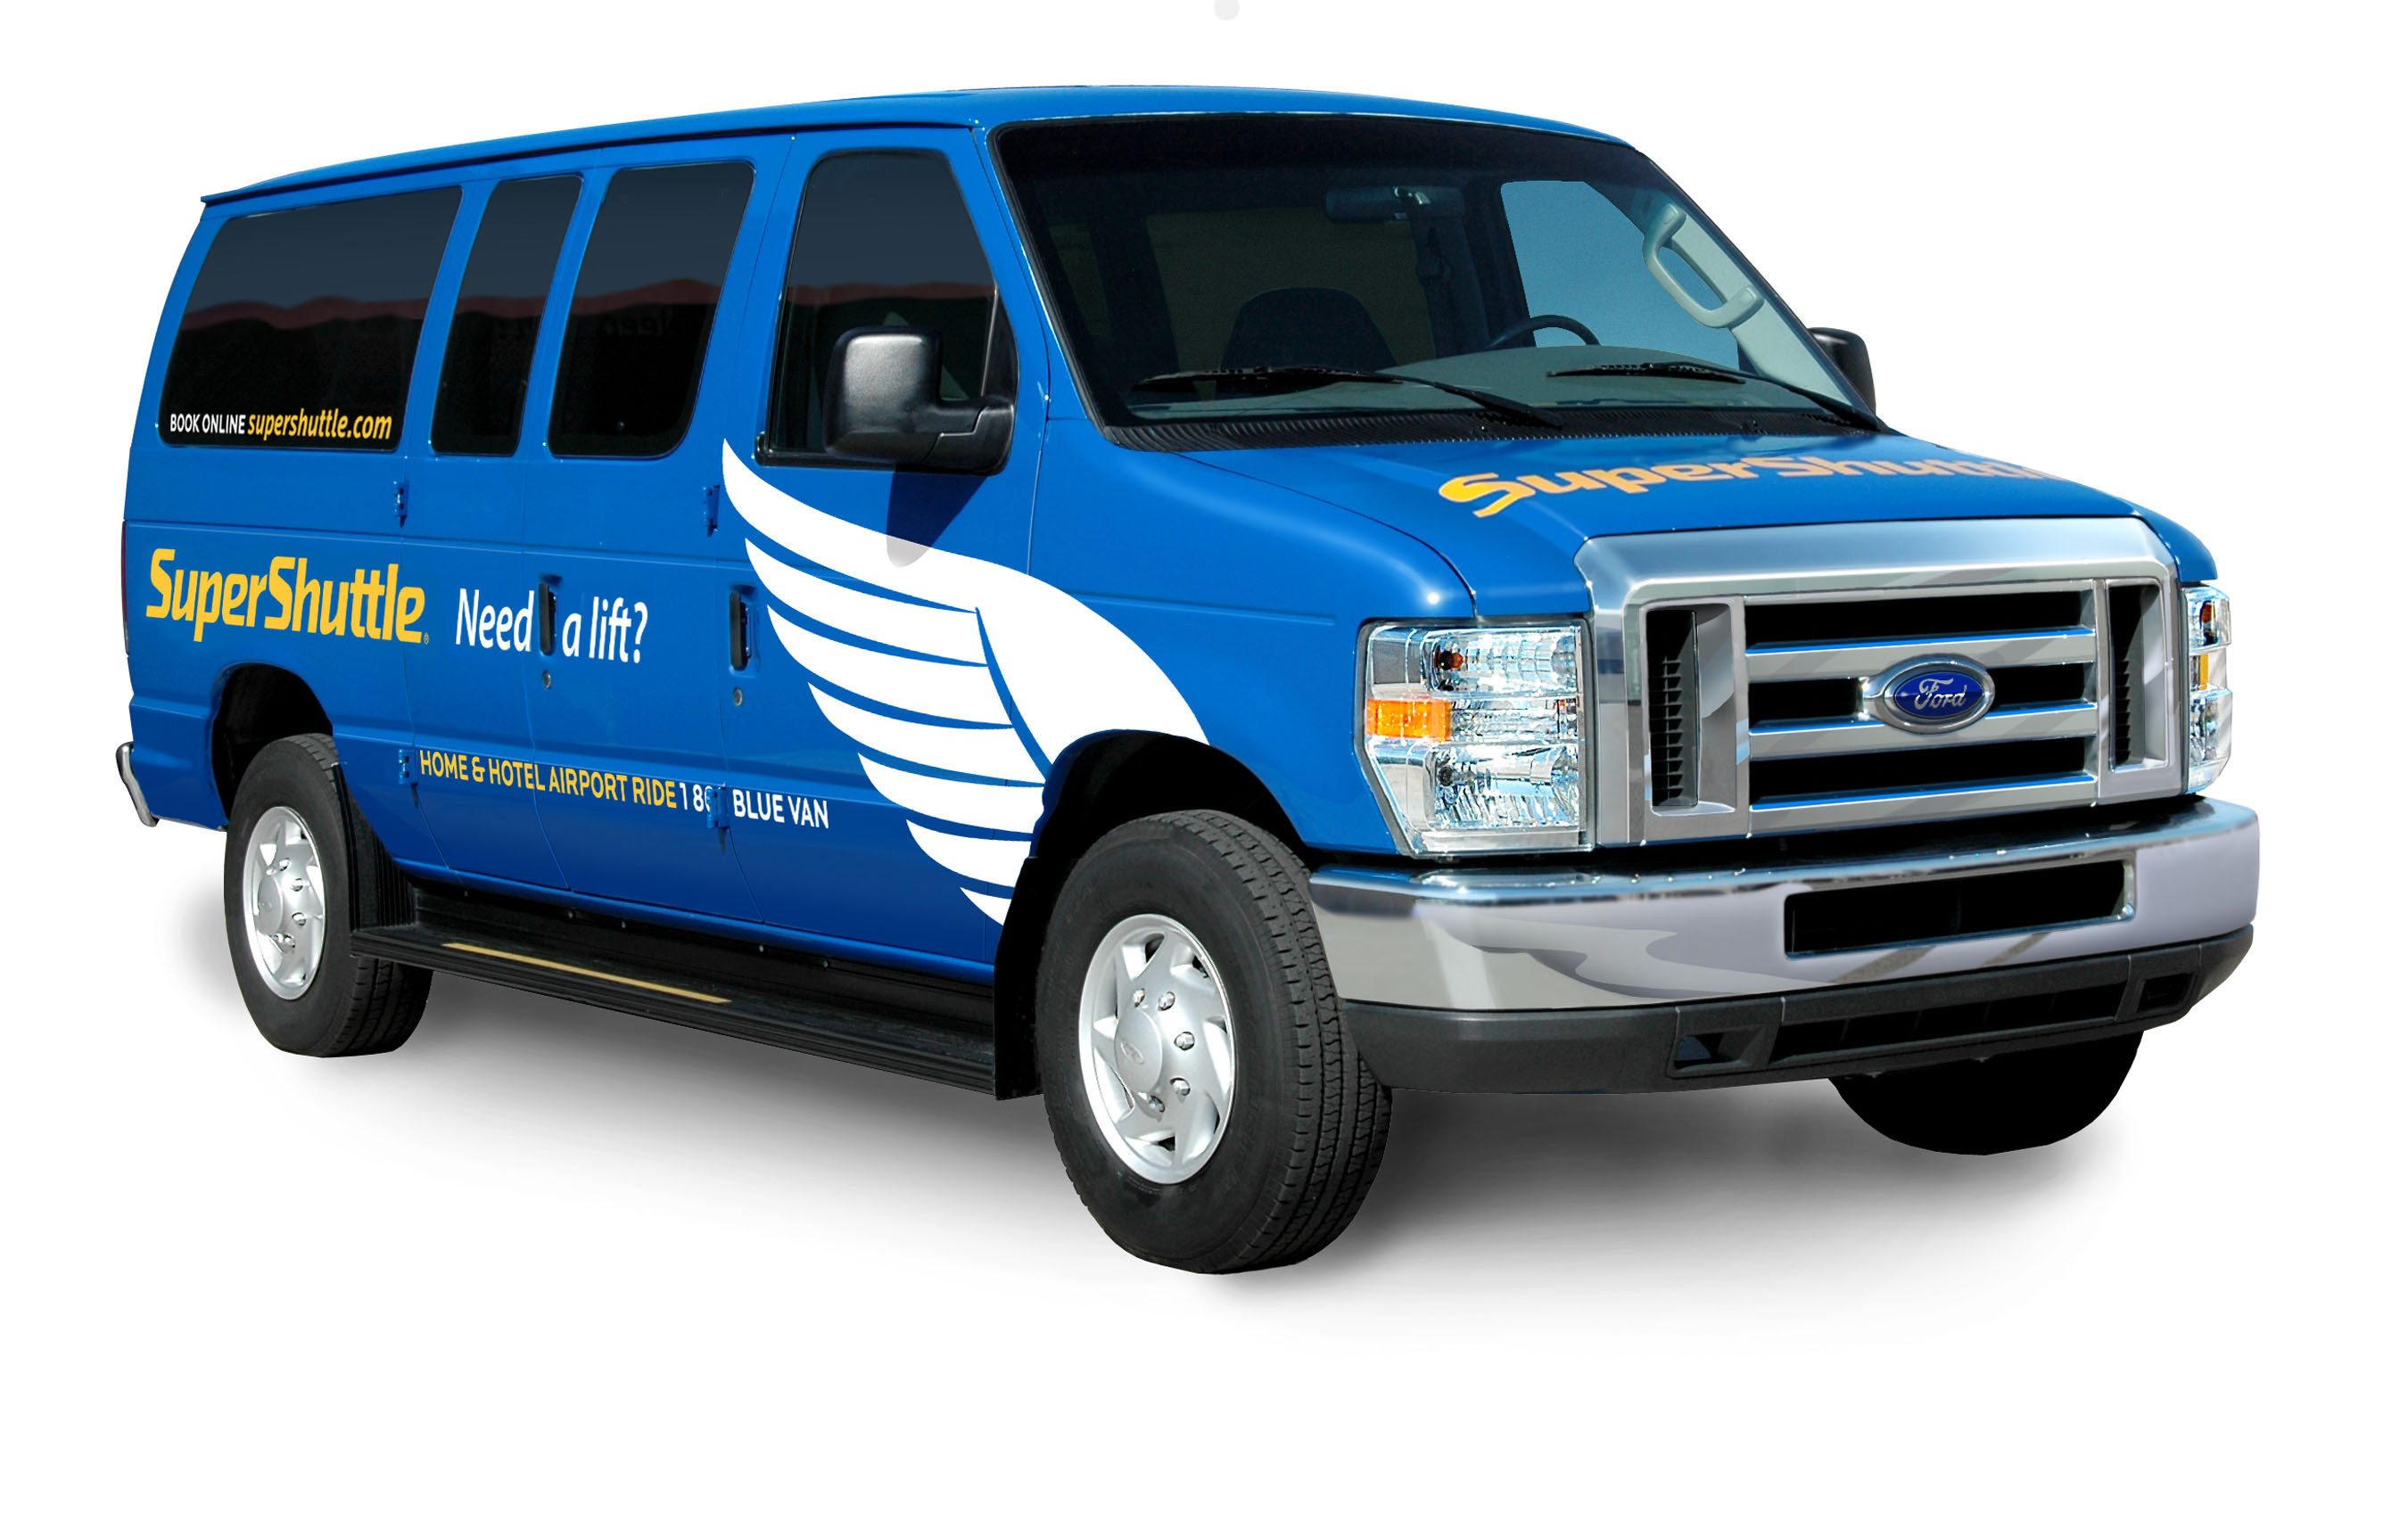 SuperShuttle, the most environmentally friendly way to get to the airport.